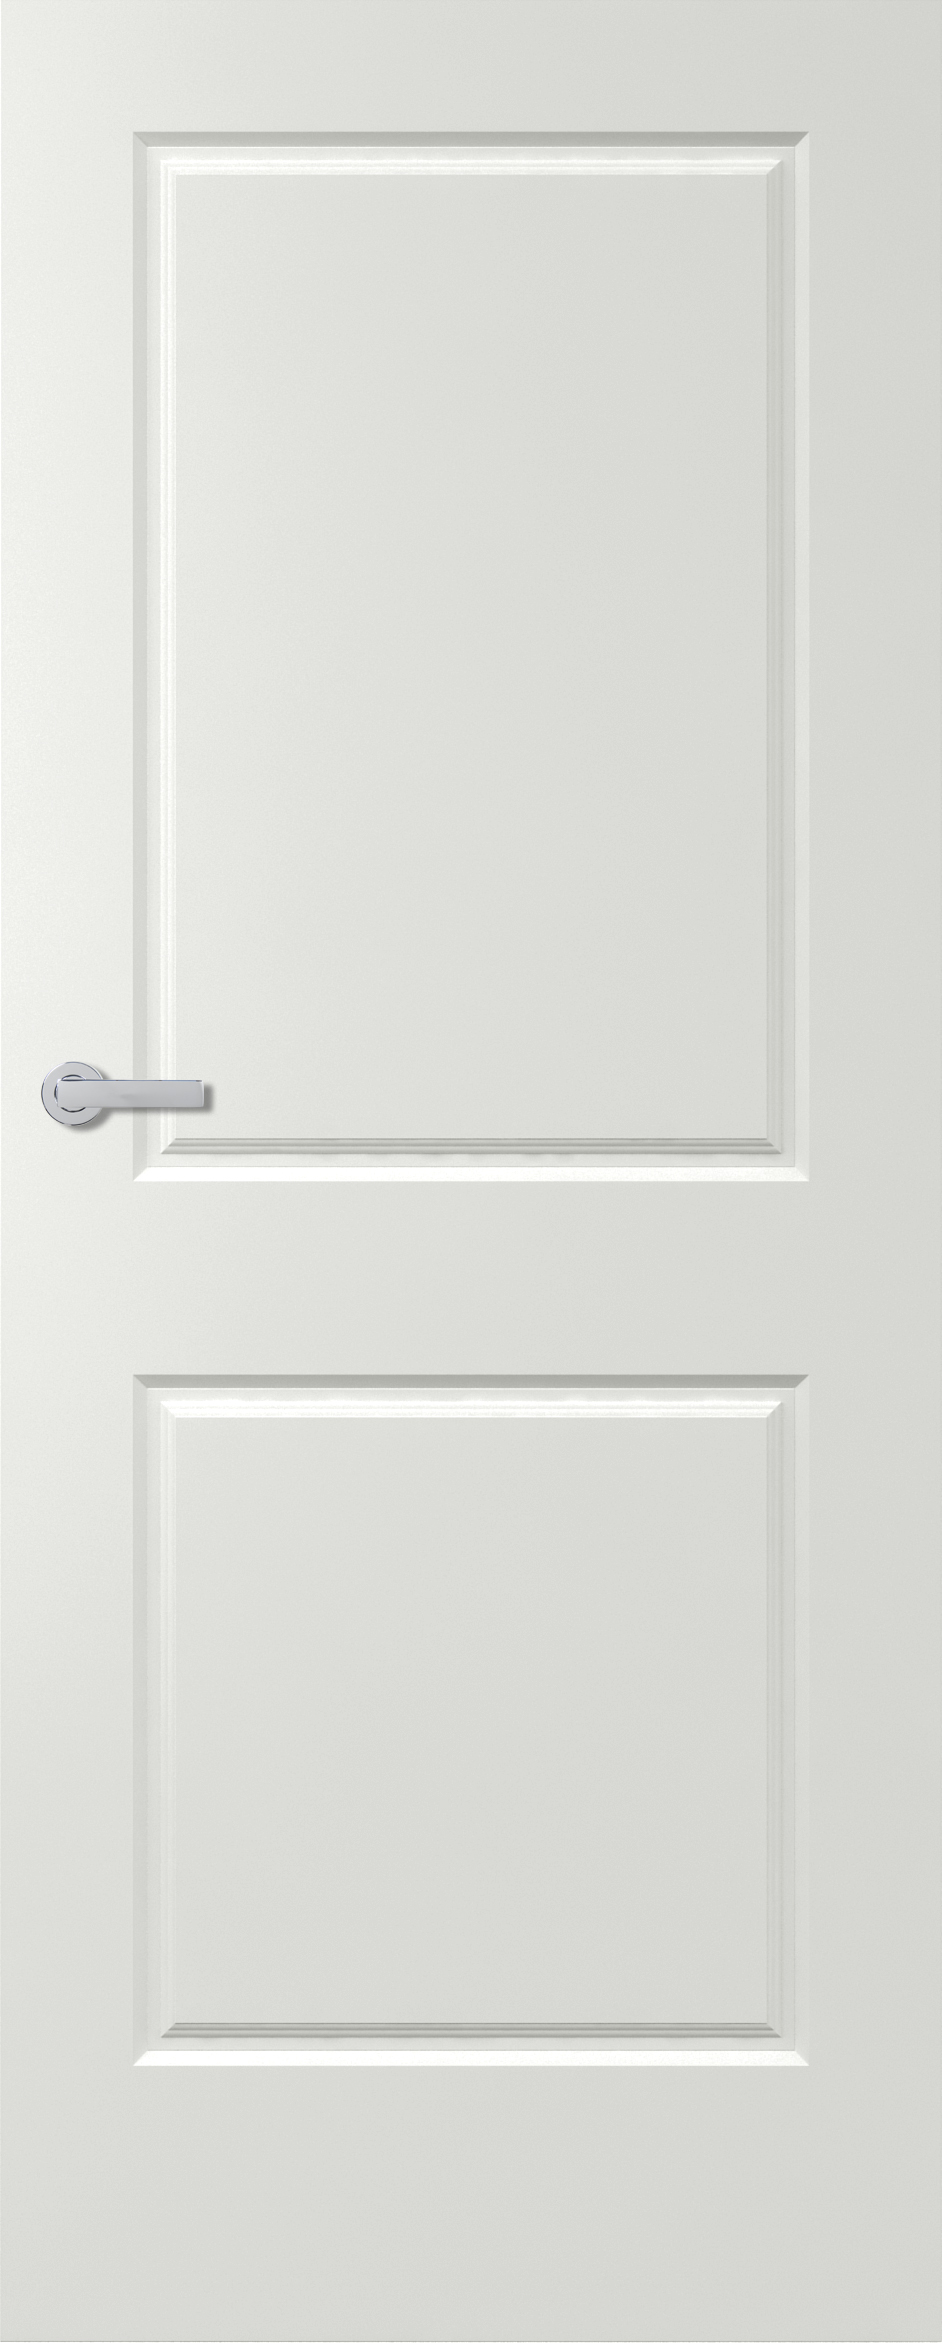 Corinthian Doors internal door Balmoral range PBAL2